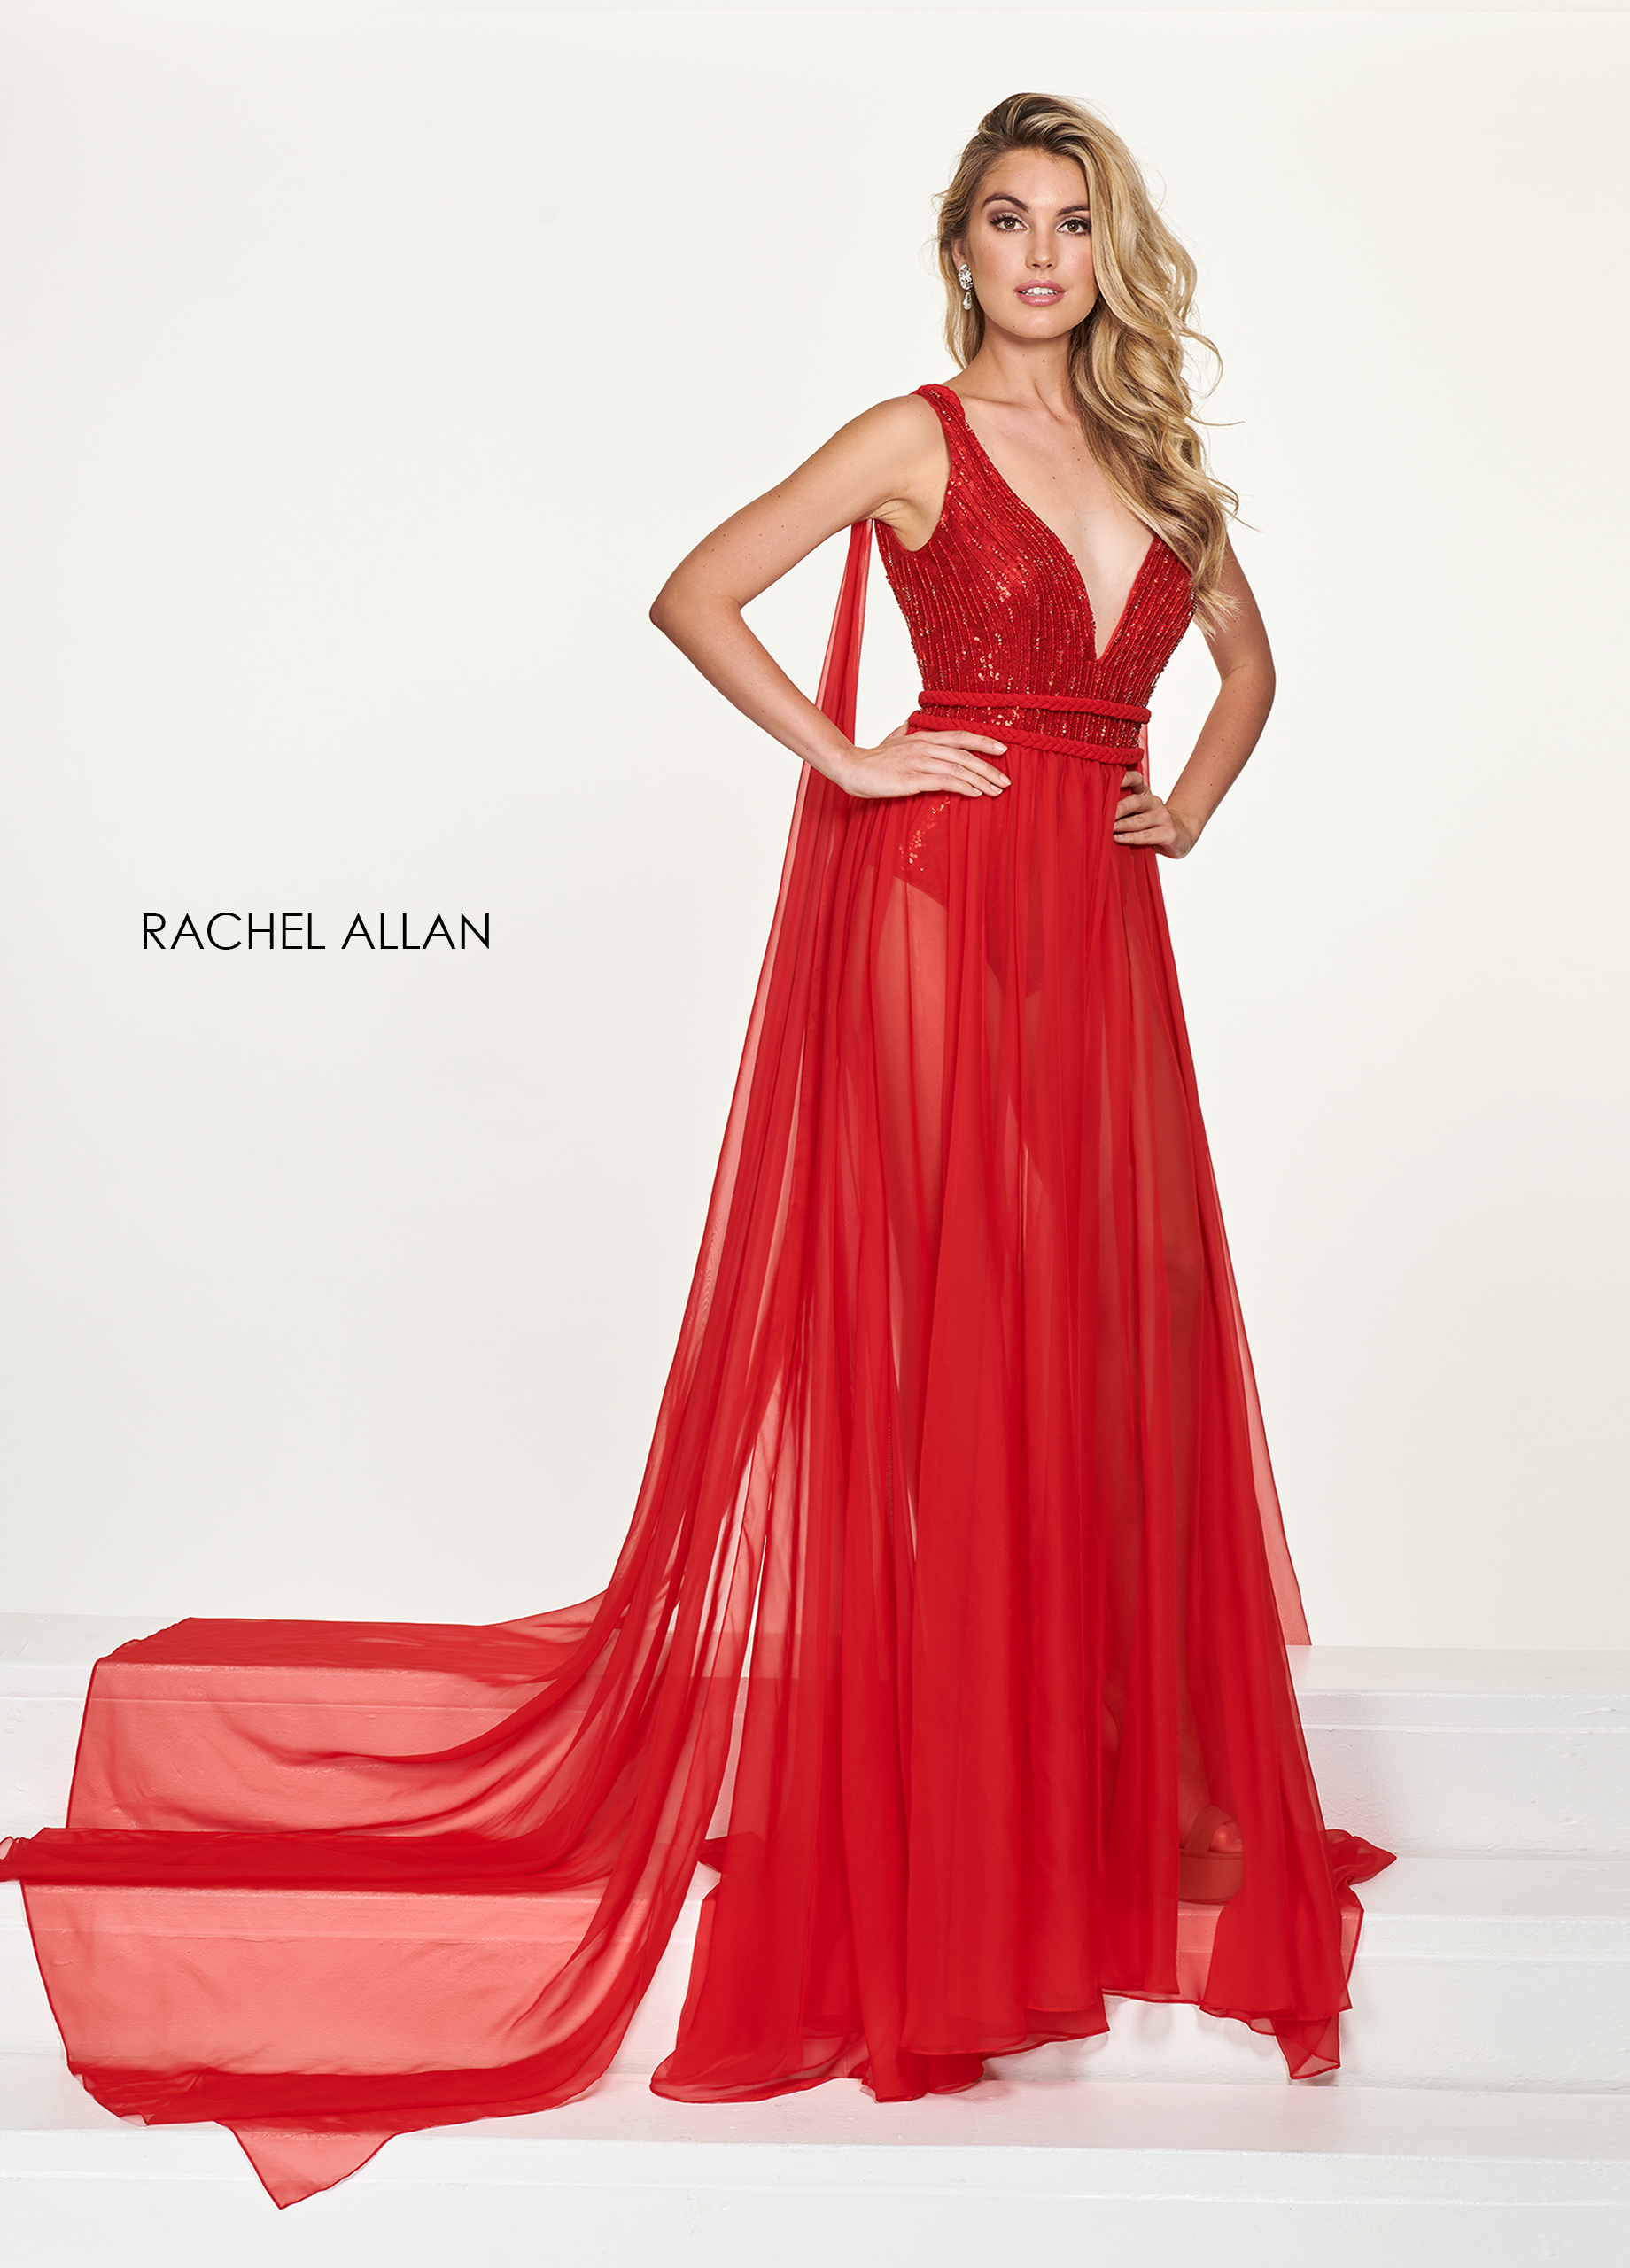 V-Neck Skirt With Overlay Pageant Dresses in Red Color